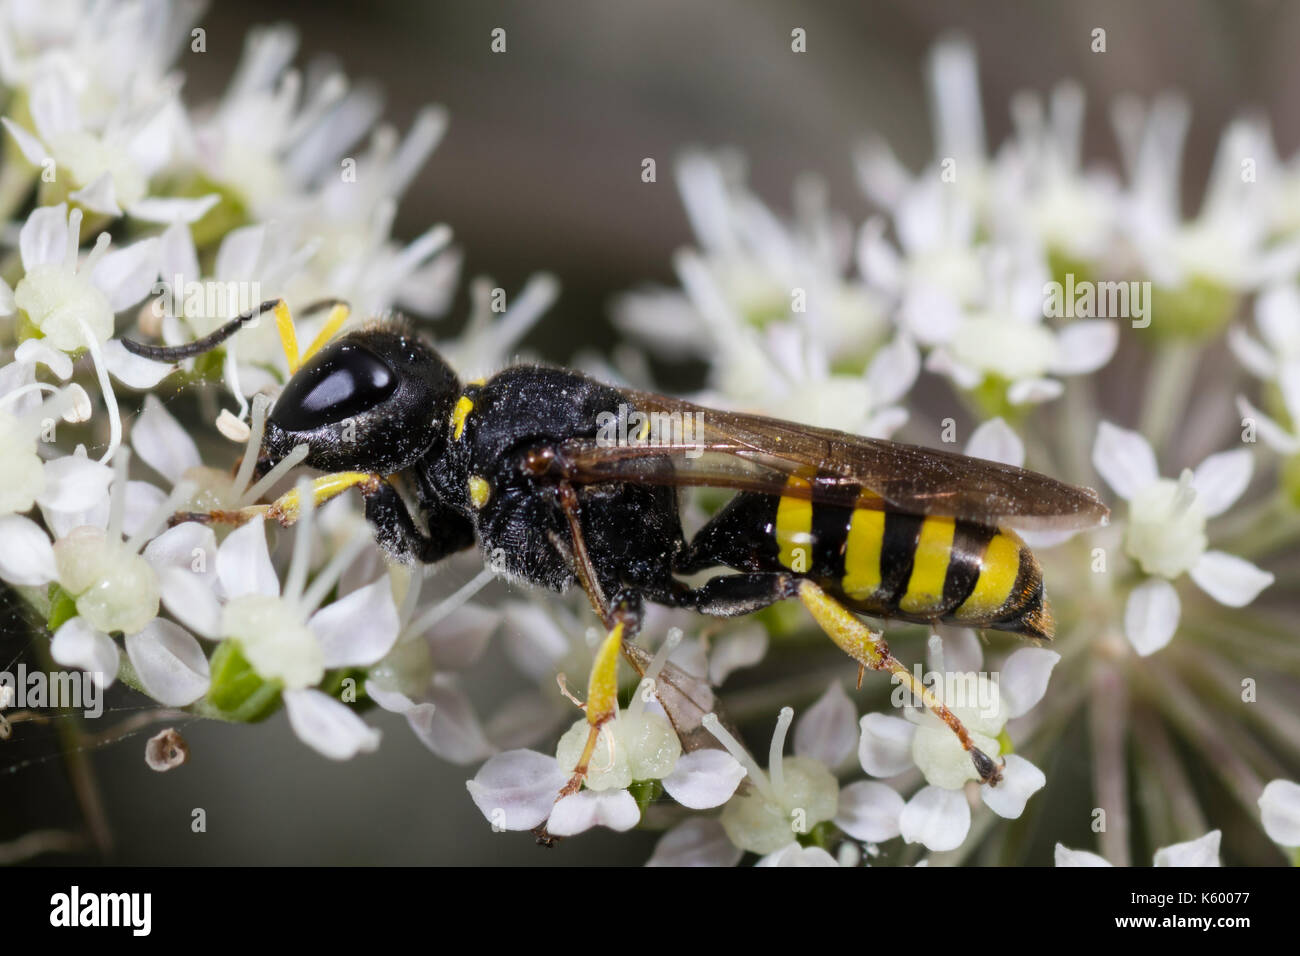 Female of the sand wasp, Ectemnius lituratus, a summer flower visitor in Southern England - Stock Image